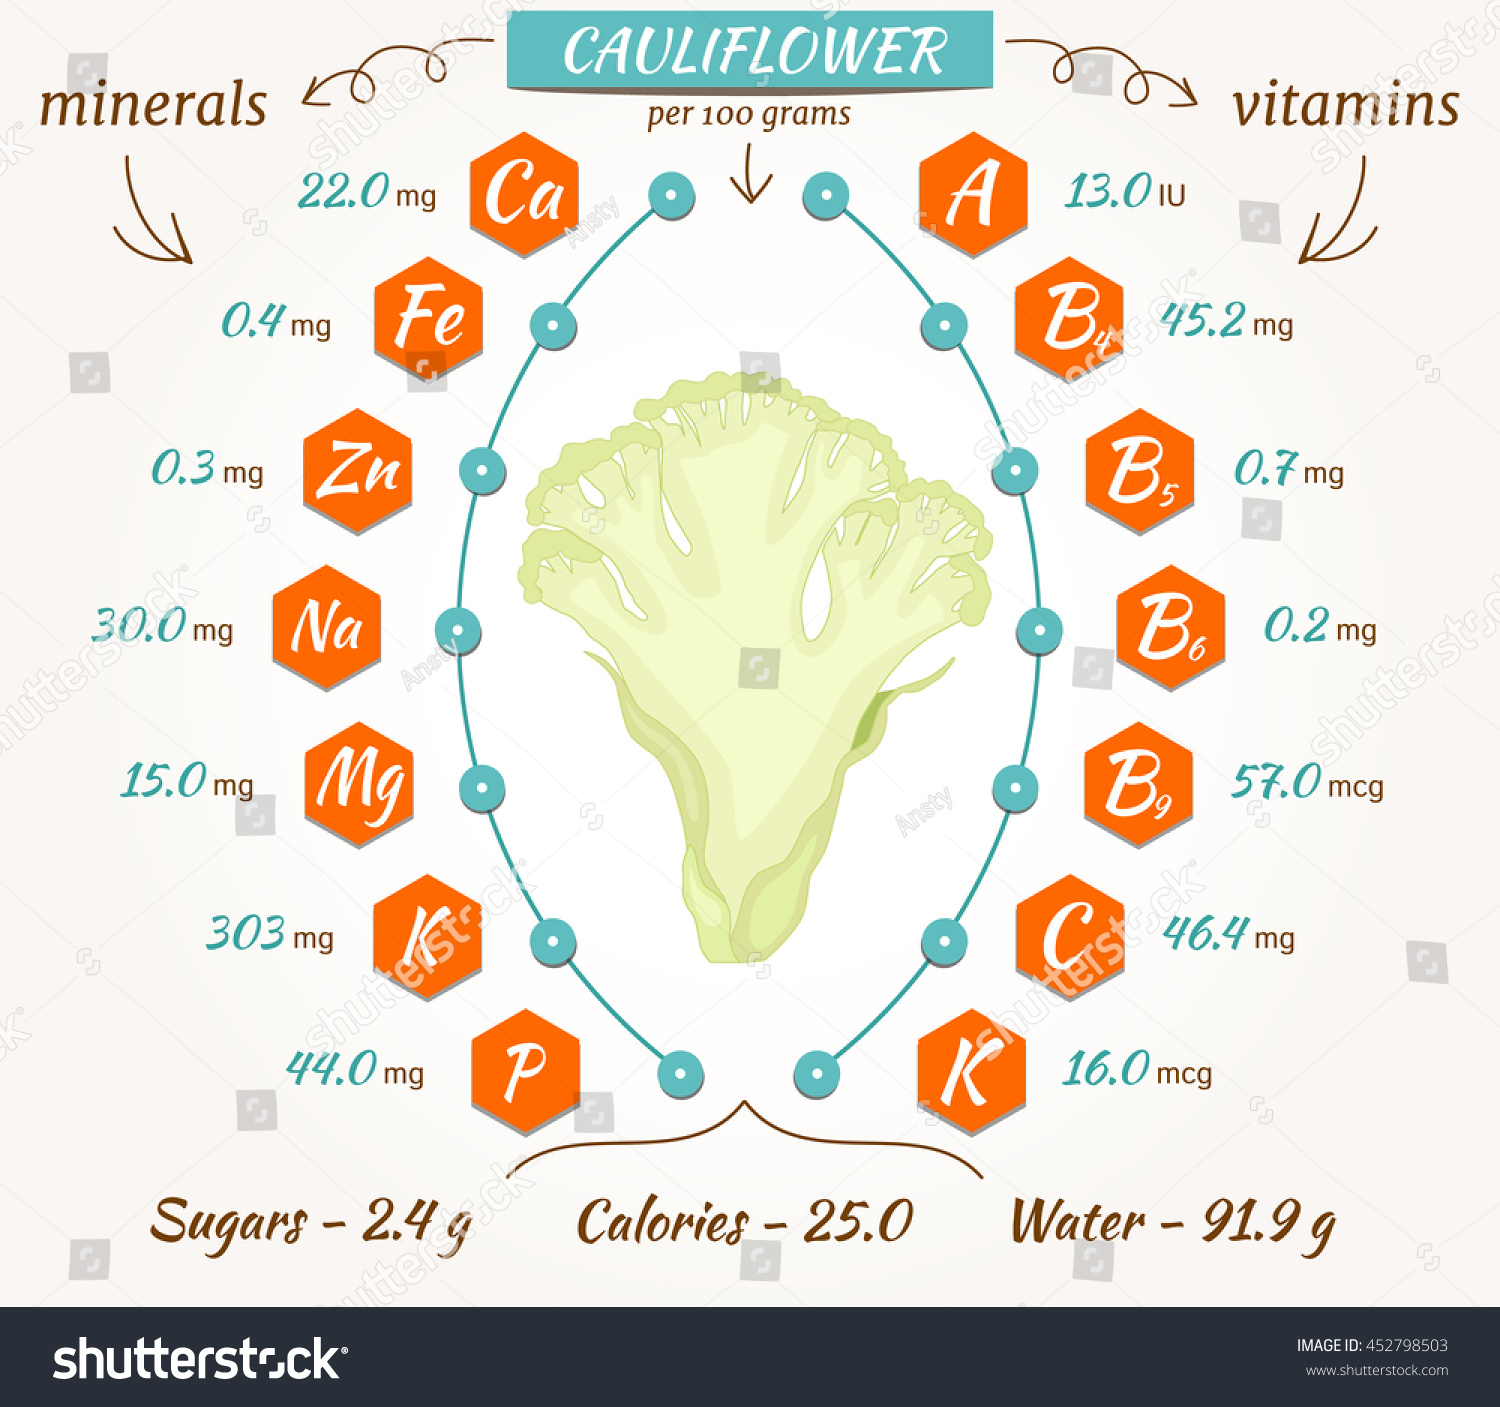 Cauliflower: calories, properties and composition 89